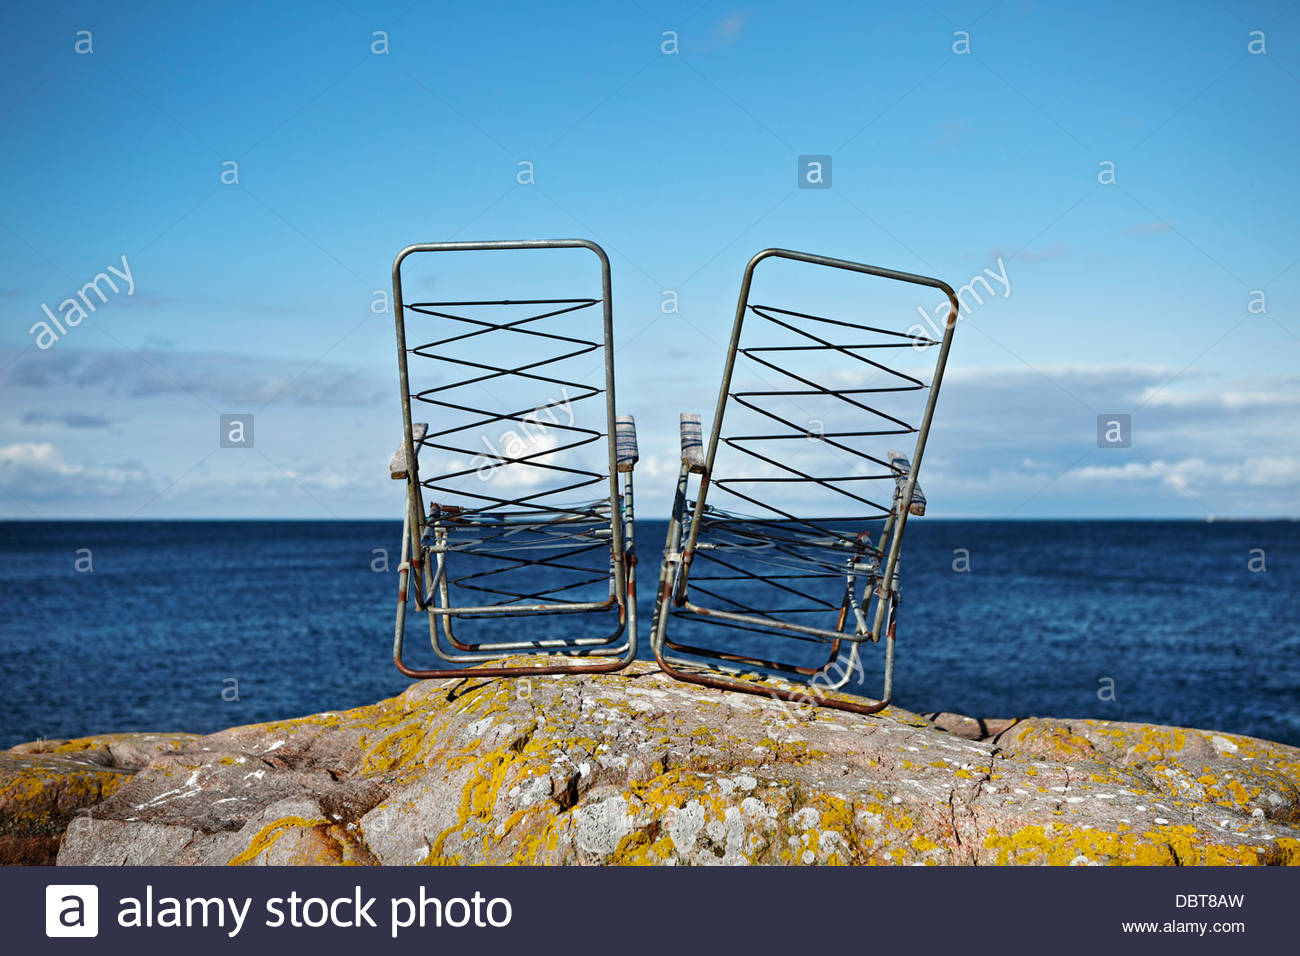 Two damaged deck chairs on rock near sea - Stock Image